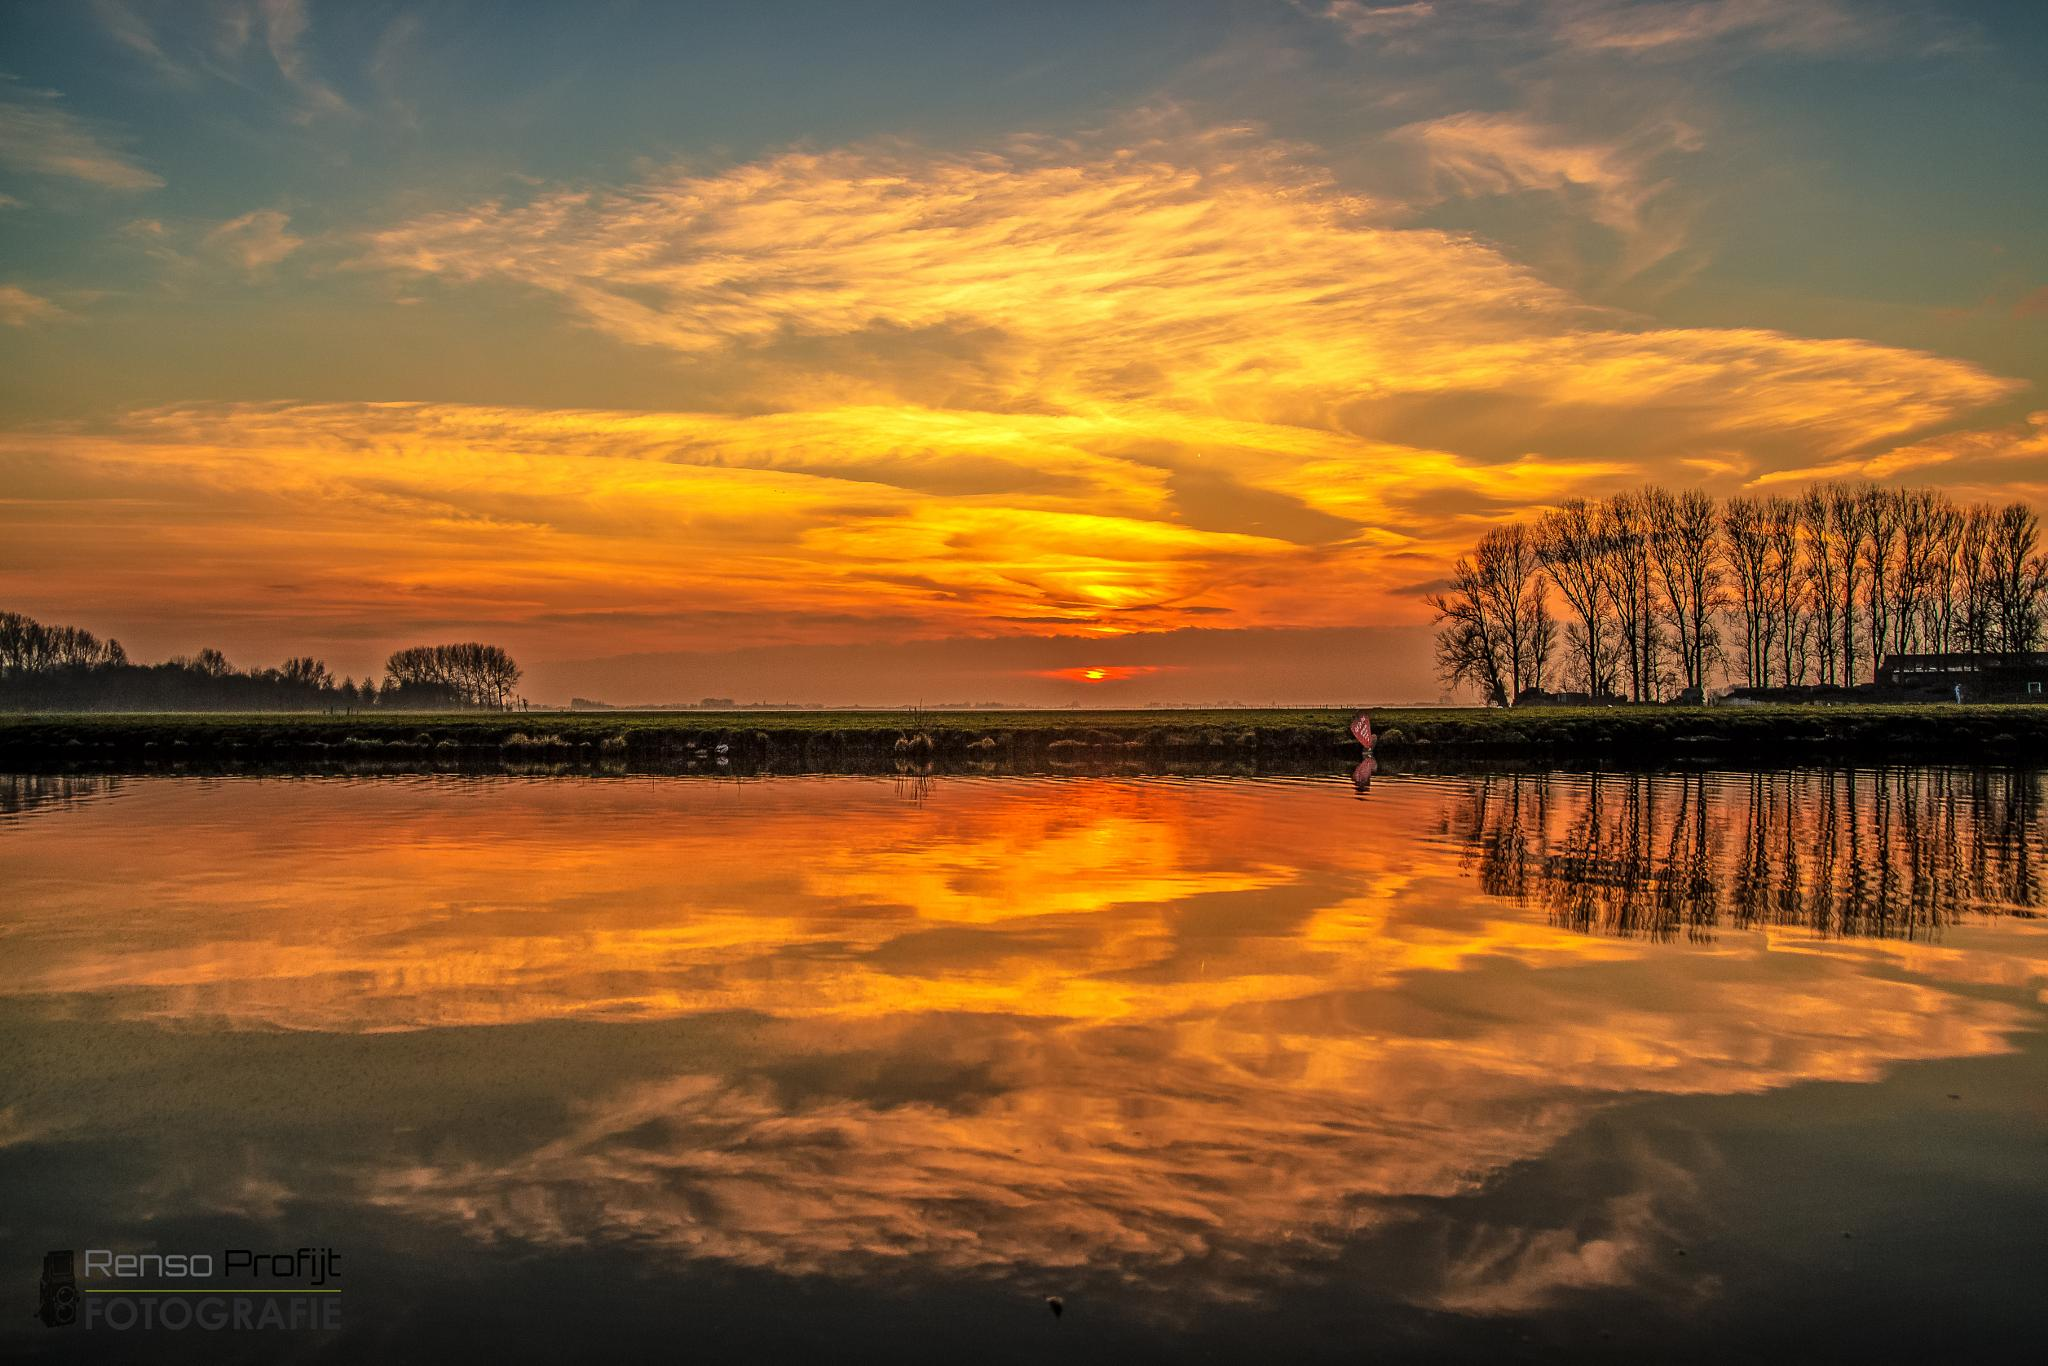 Sunset in the Netherlands  by rensoprofijt